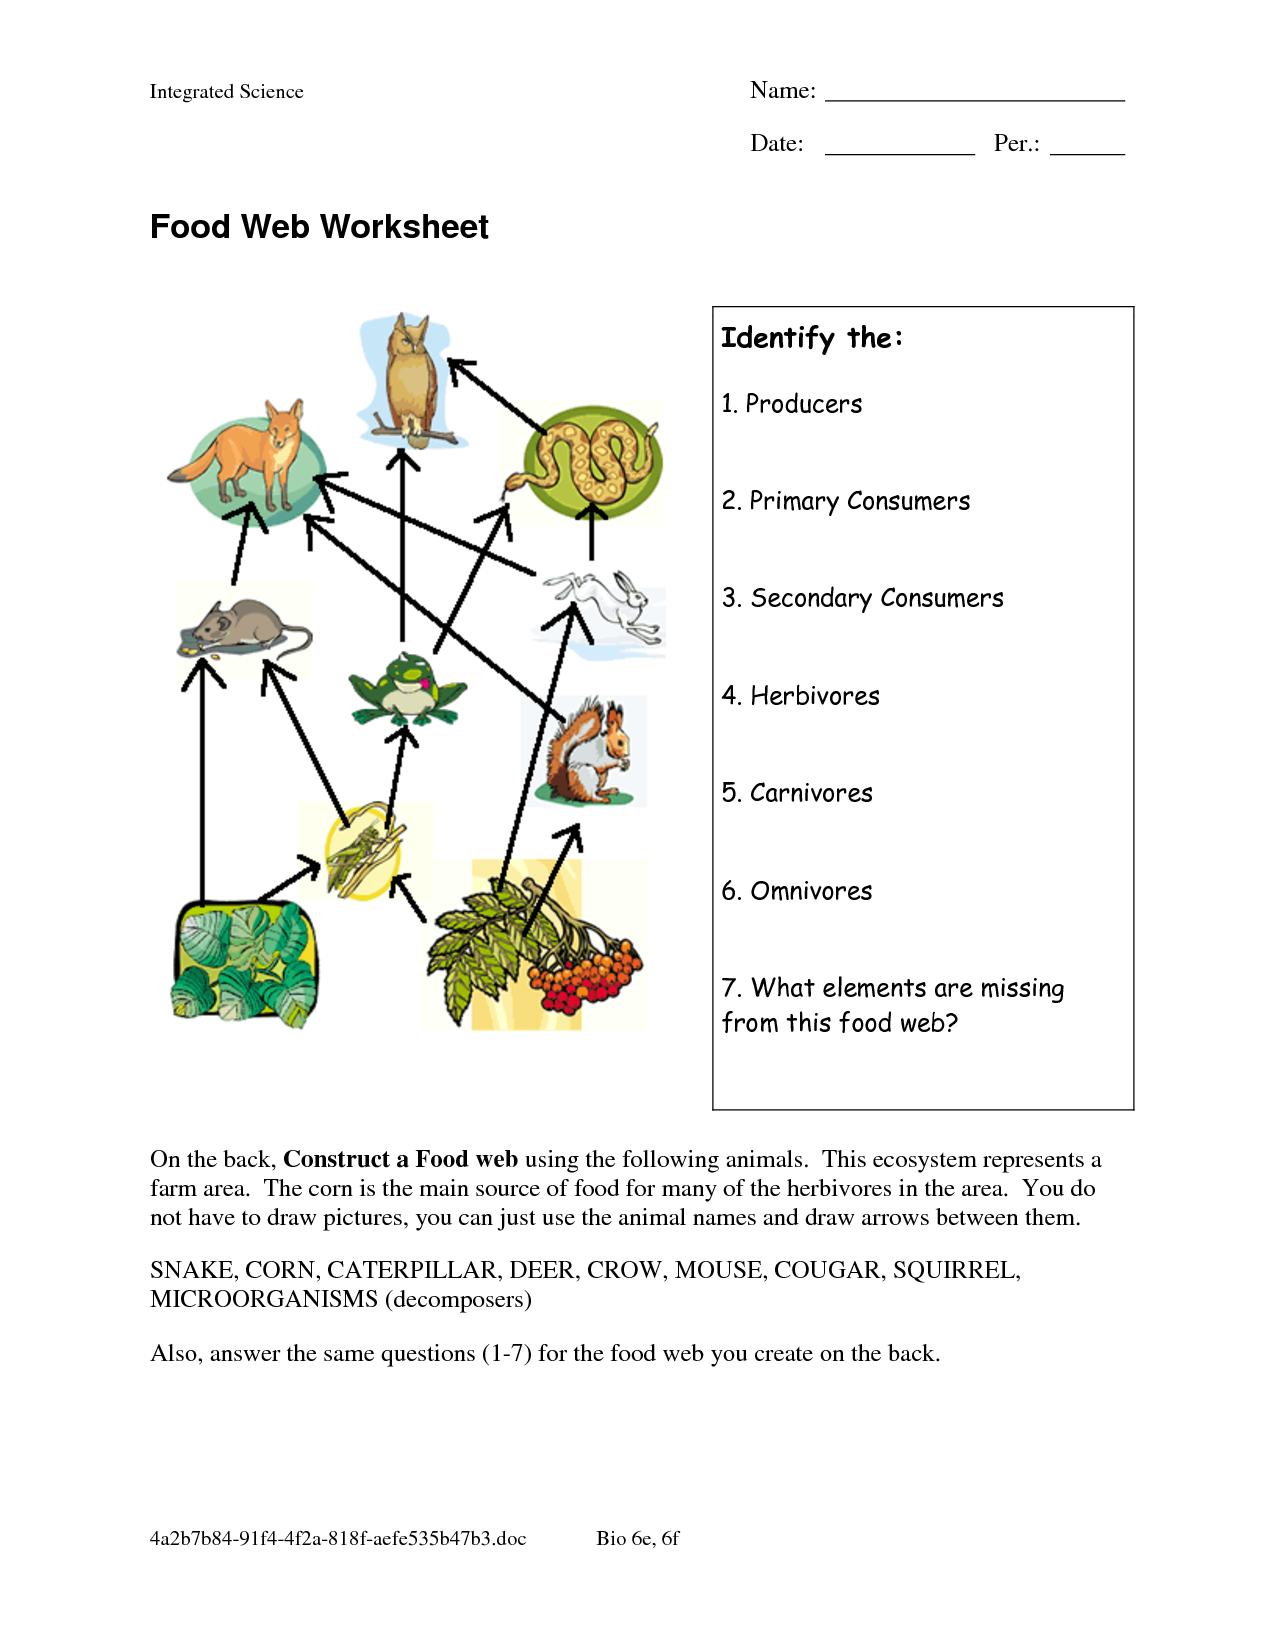 Food Web Worksheets Food Web Worksheet DOC Food web